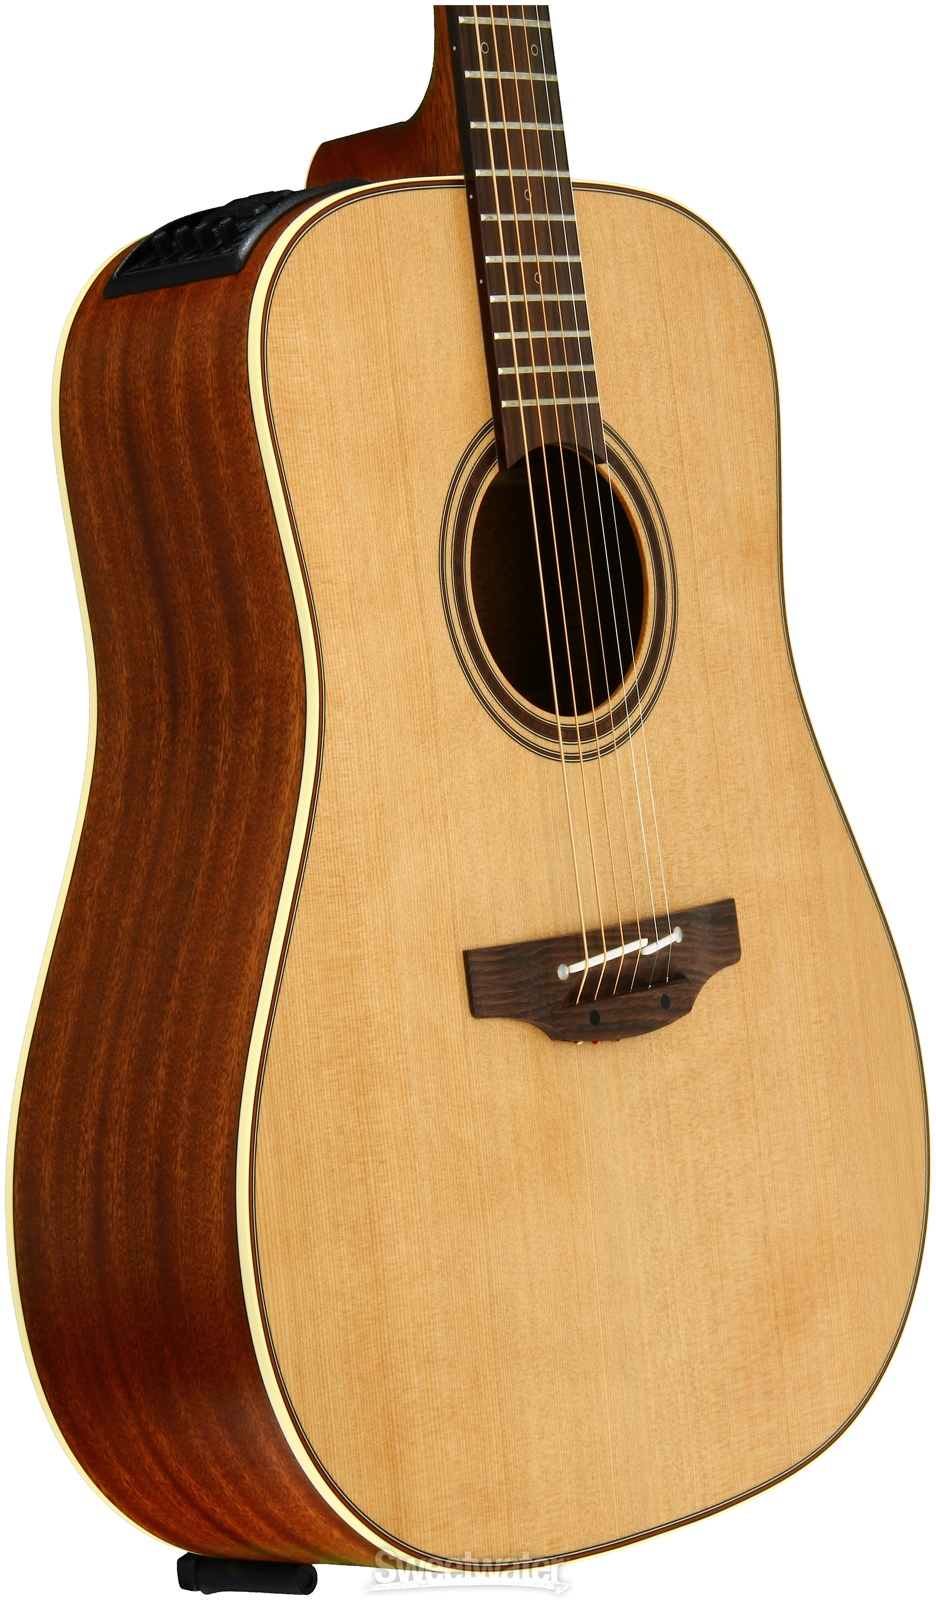 sold takamine p3n pro series electric acoustic guitar cornerstone music. Black Bedroom Furniture Sets. Home Design Ideas